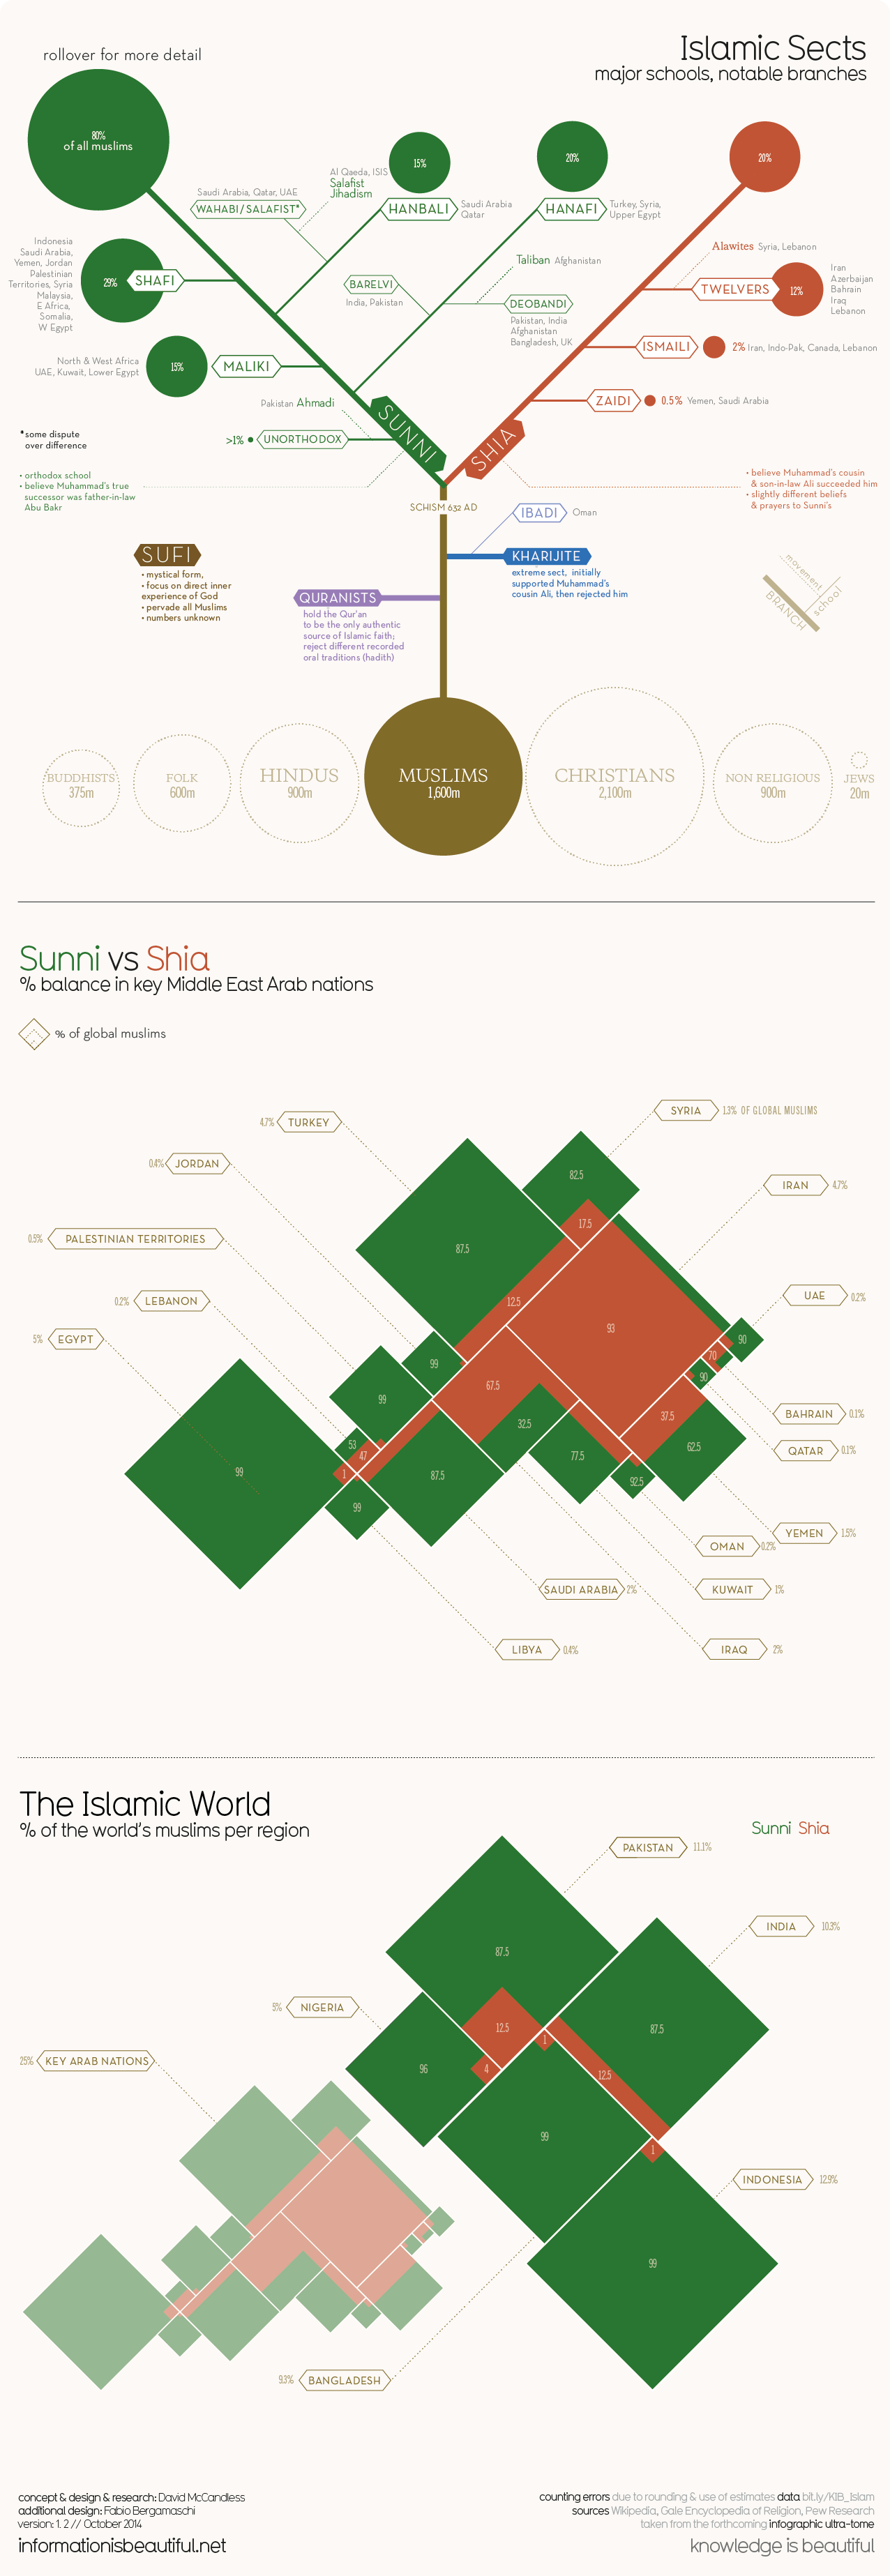 http://infobeautiful3.s3.amazonaws.com/2014/11/1276_islamic-sects_Nov18-onroll.png